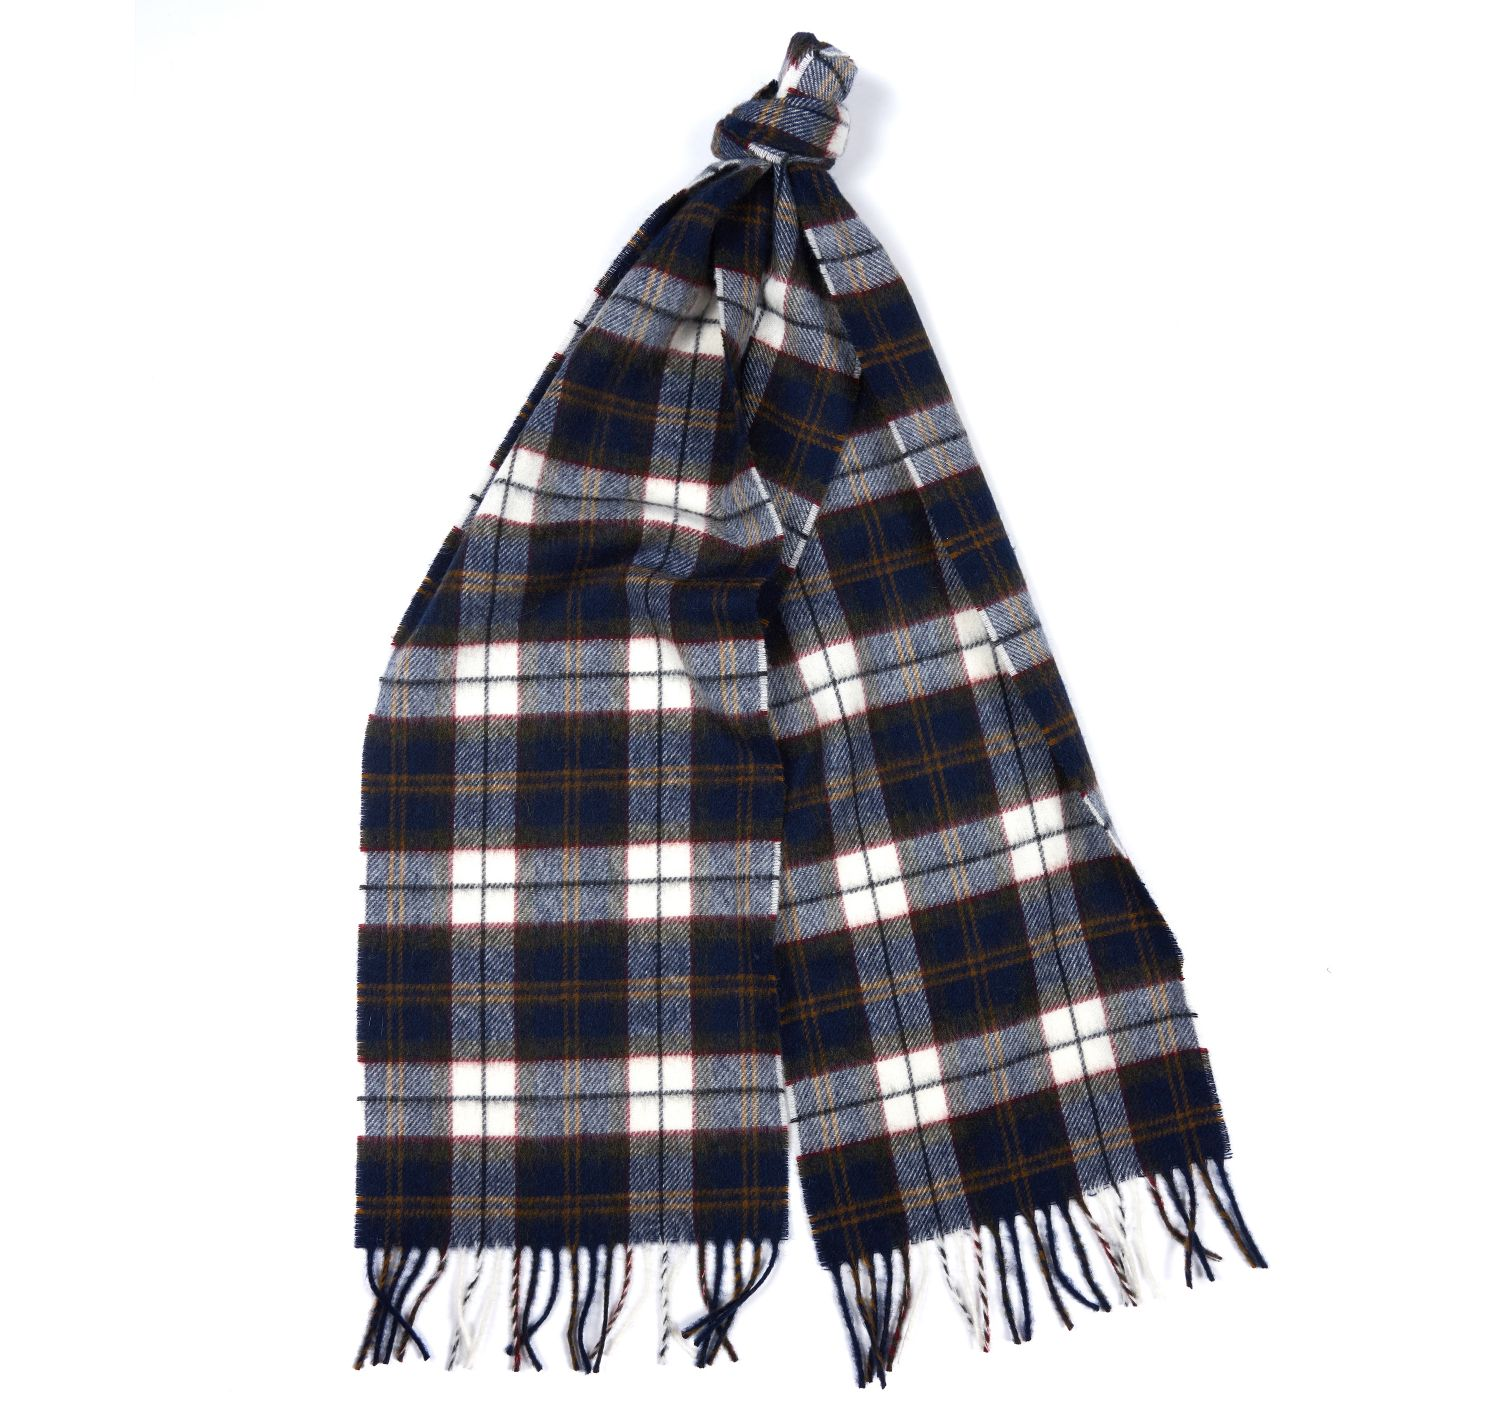 Barbour Robinsons Scarf in Navy Ecru and Olive